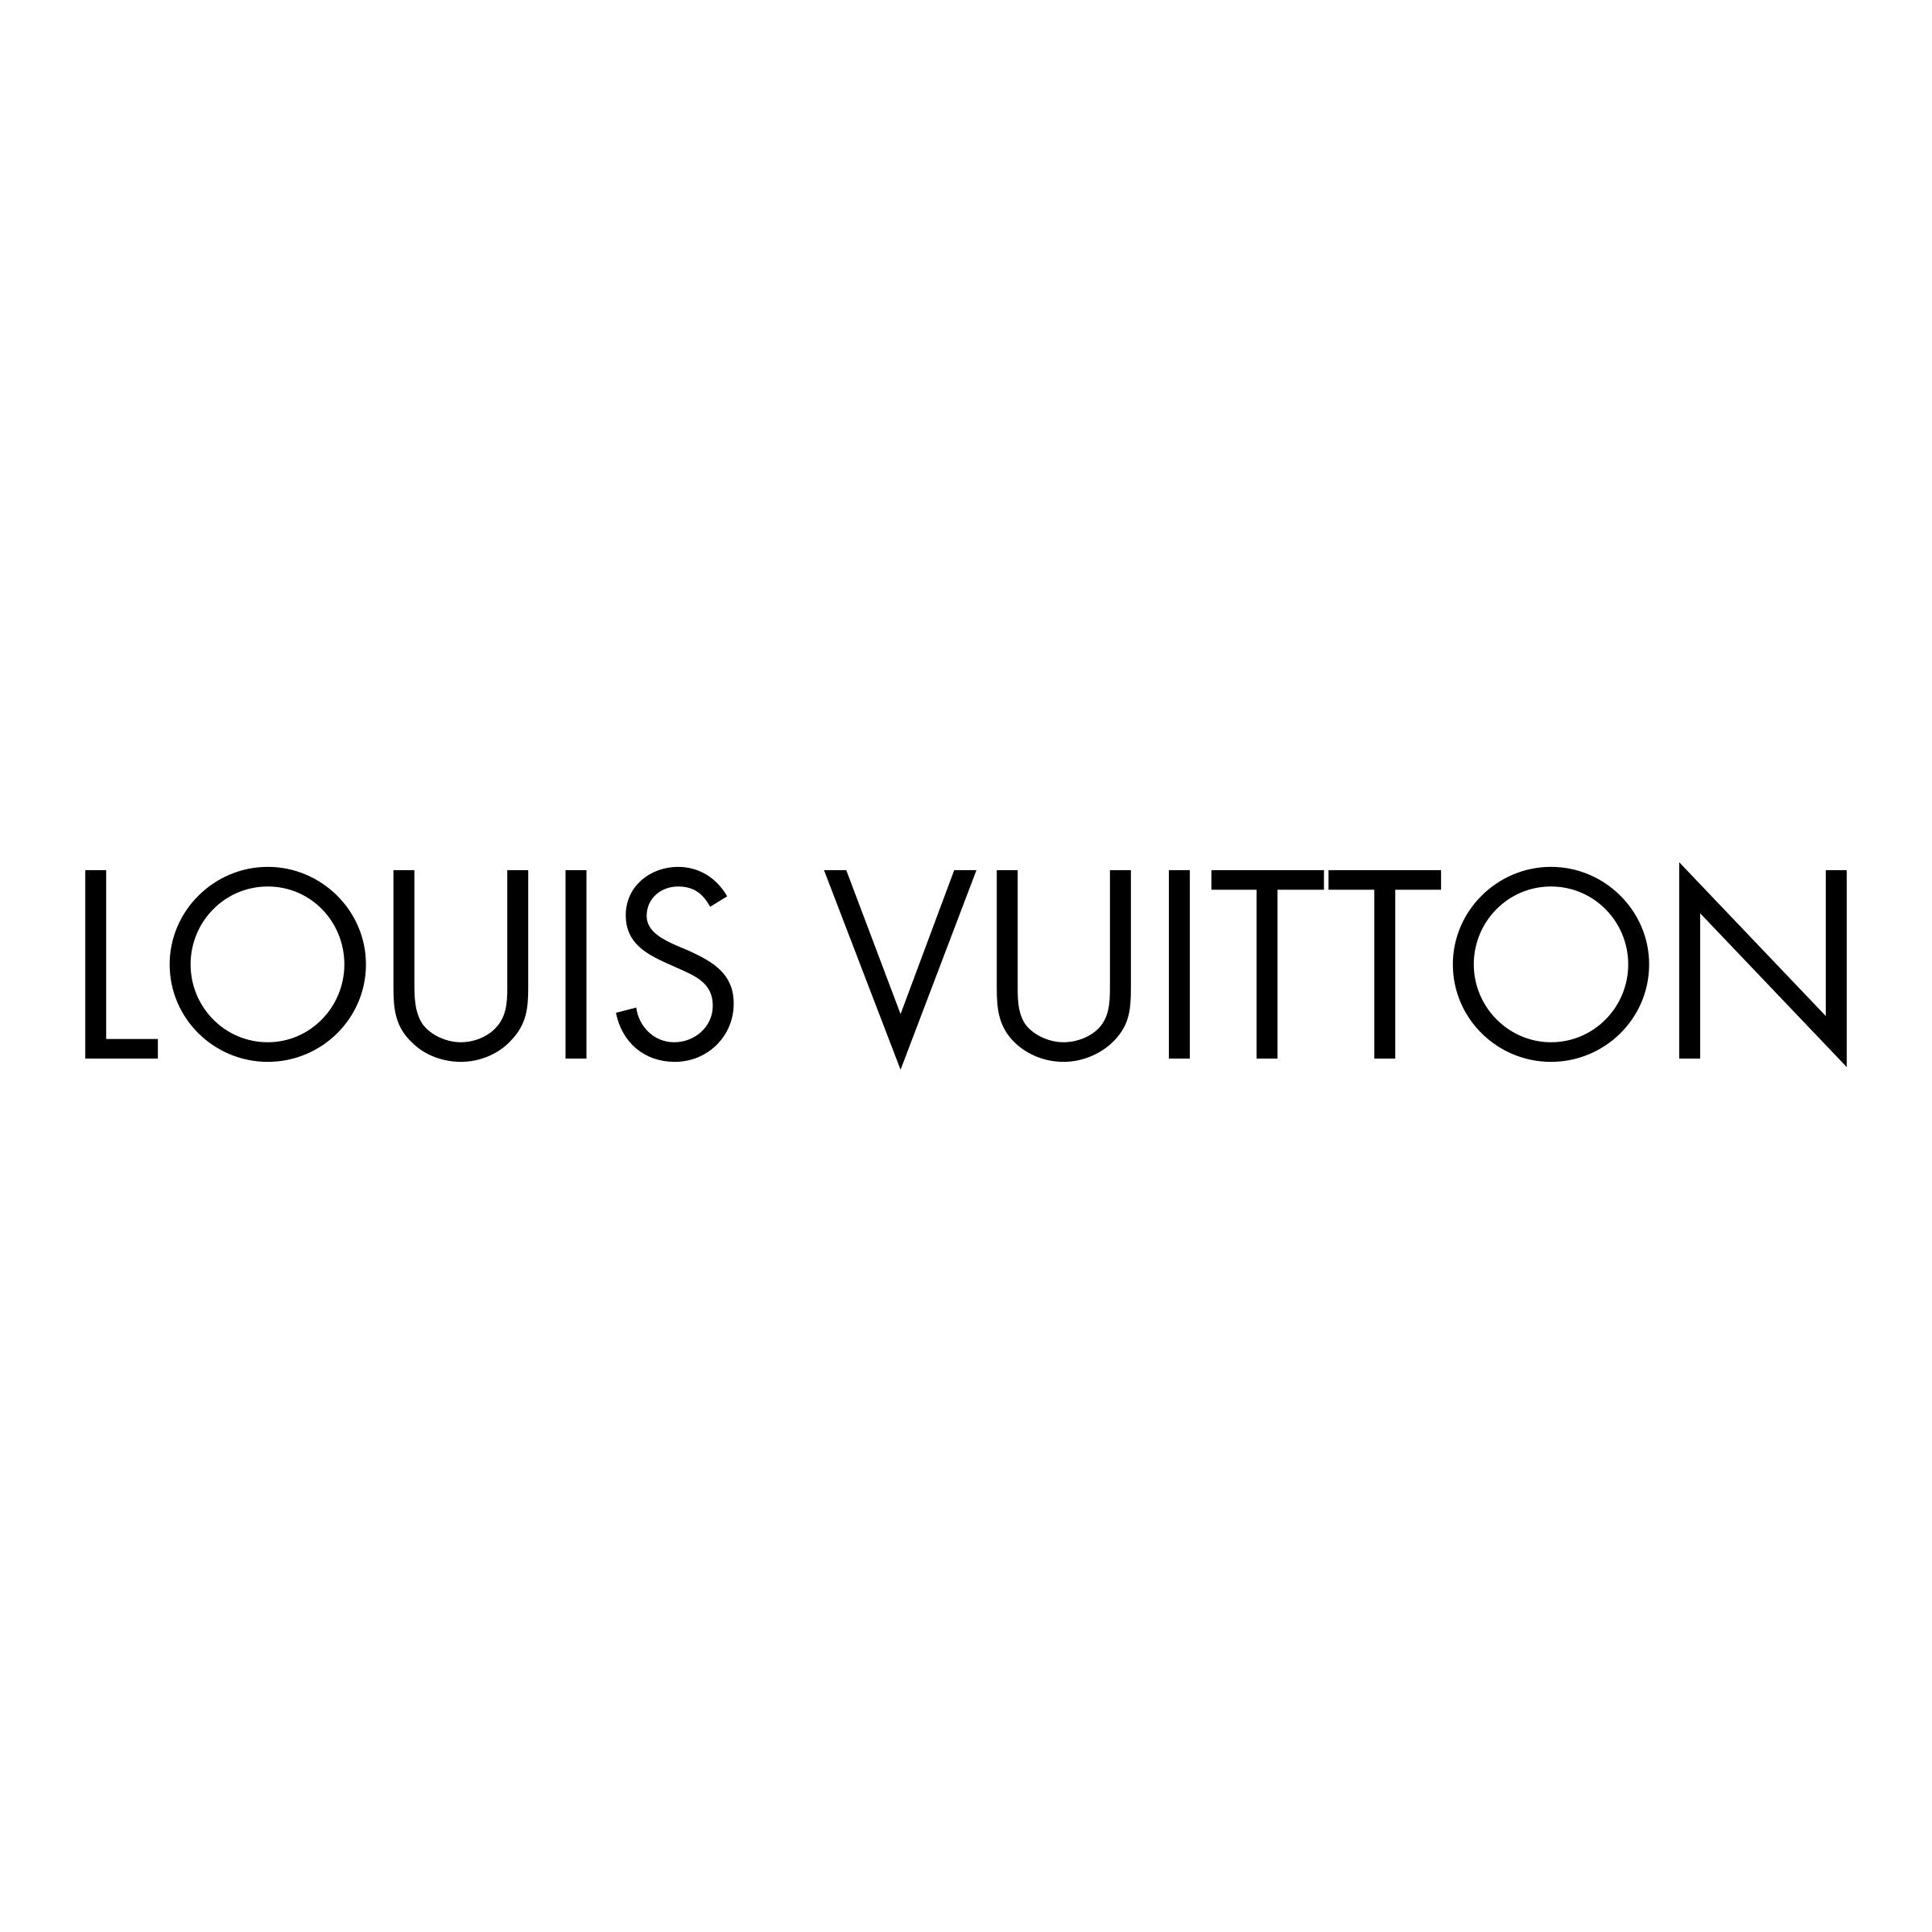 Louis Vuitton Logo - Louis Vuitton Logo PNG Transparent & SVG Vector - Freebie Supply